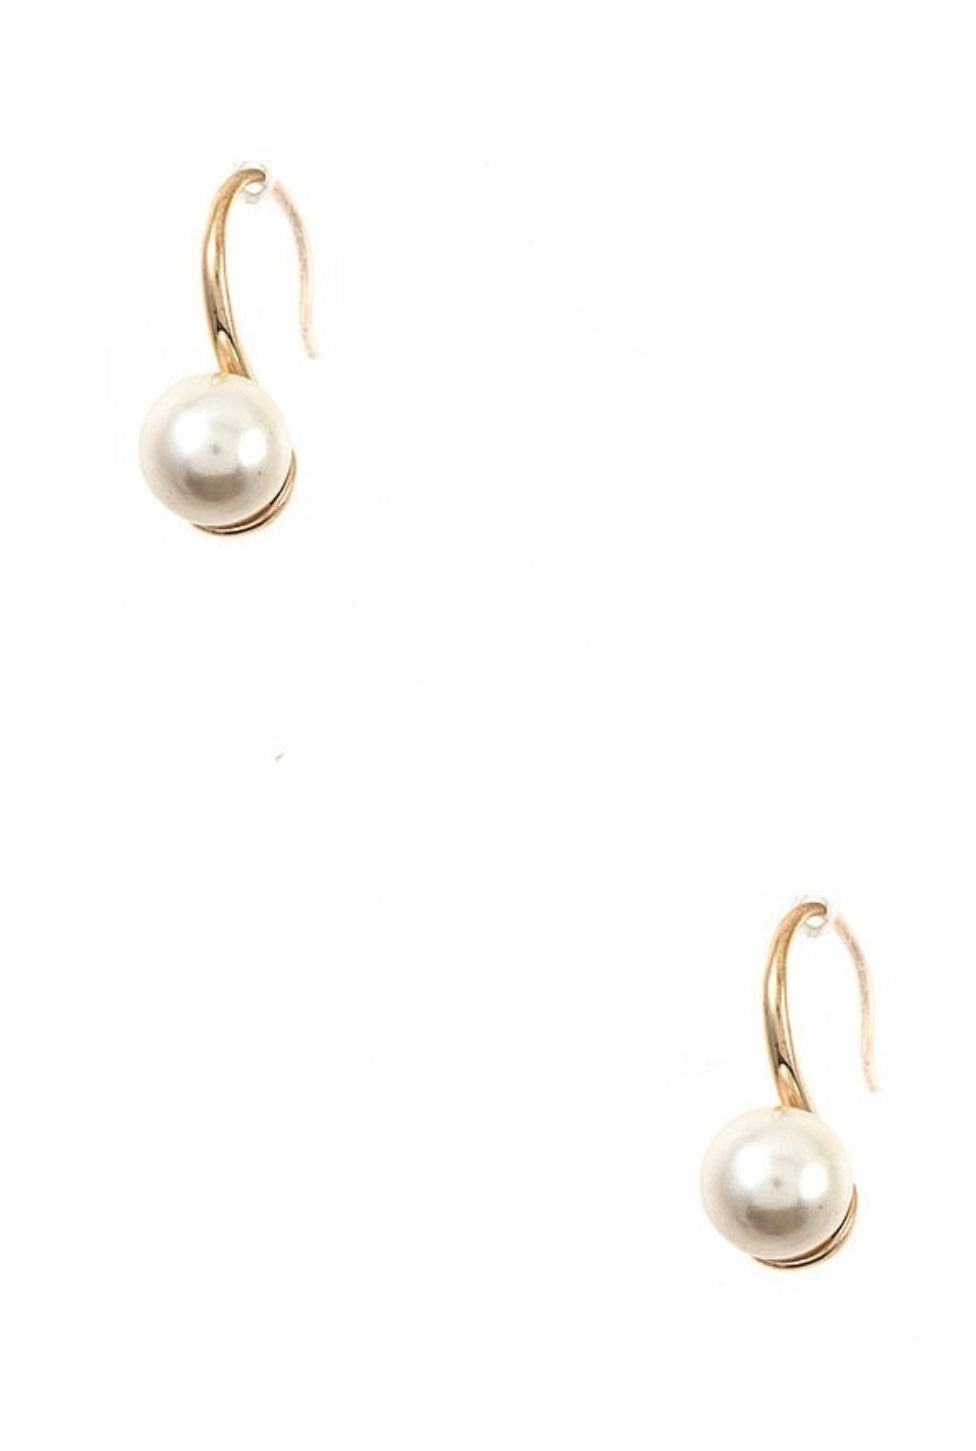 Drop Orb Earrings - Gold and Pearl